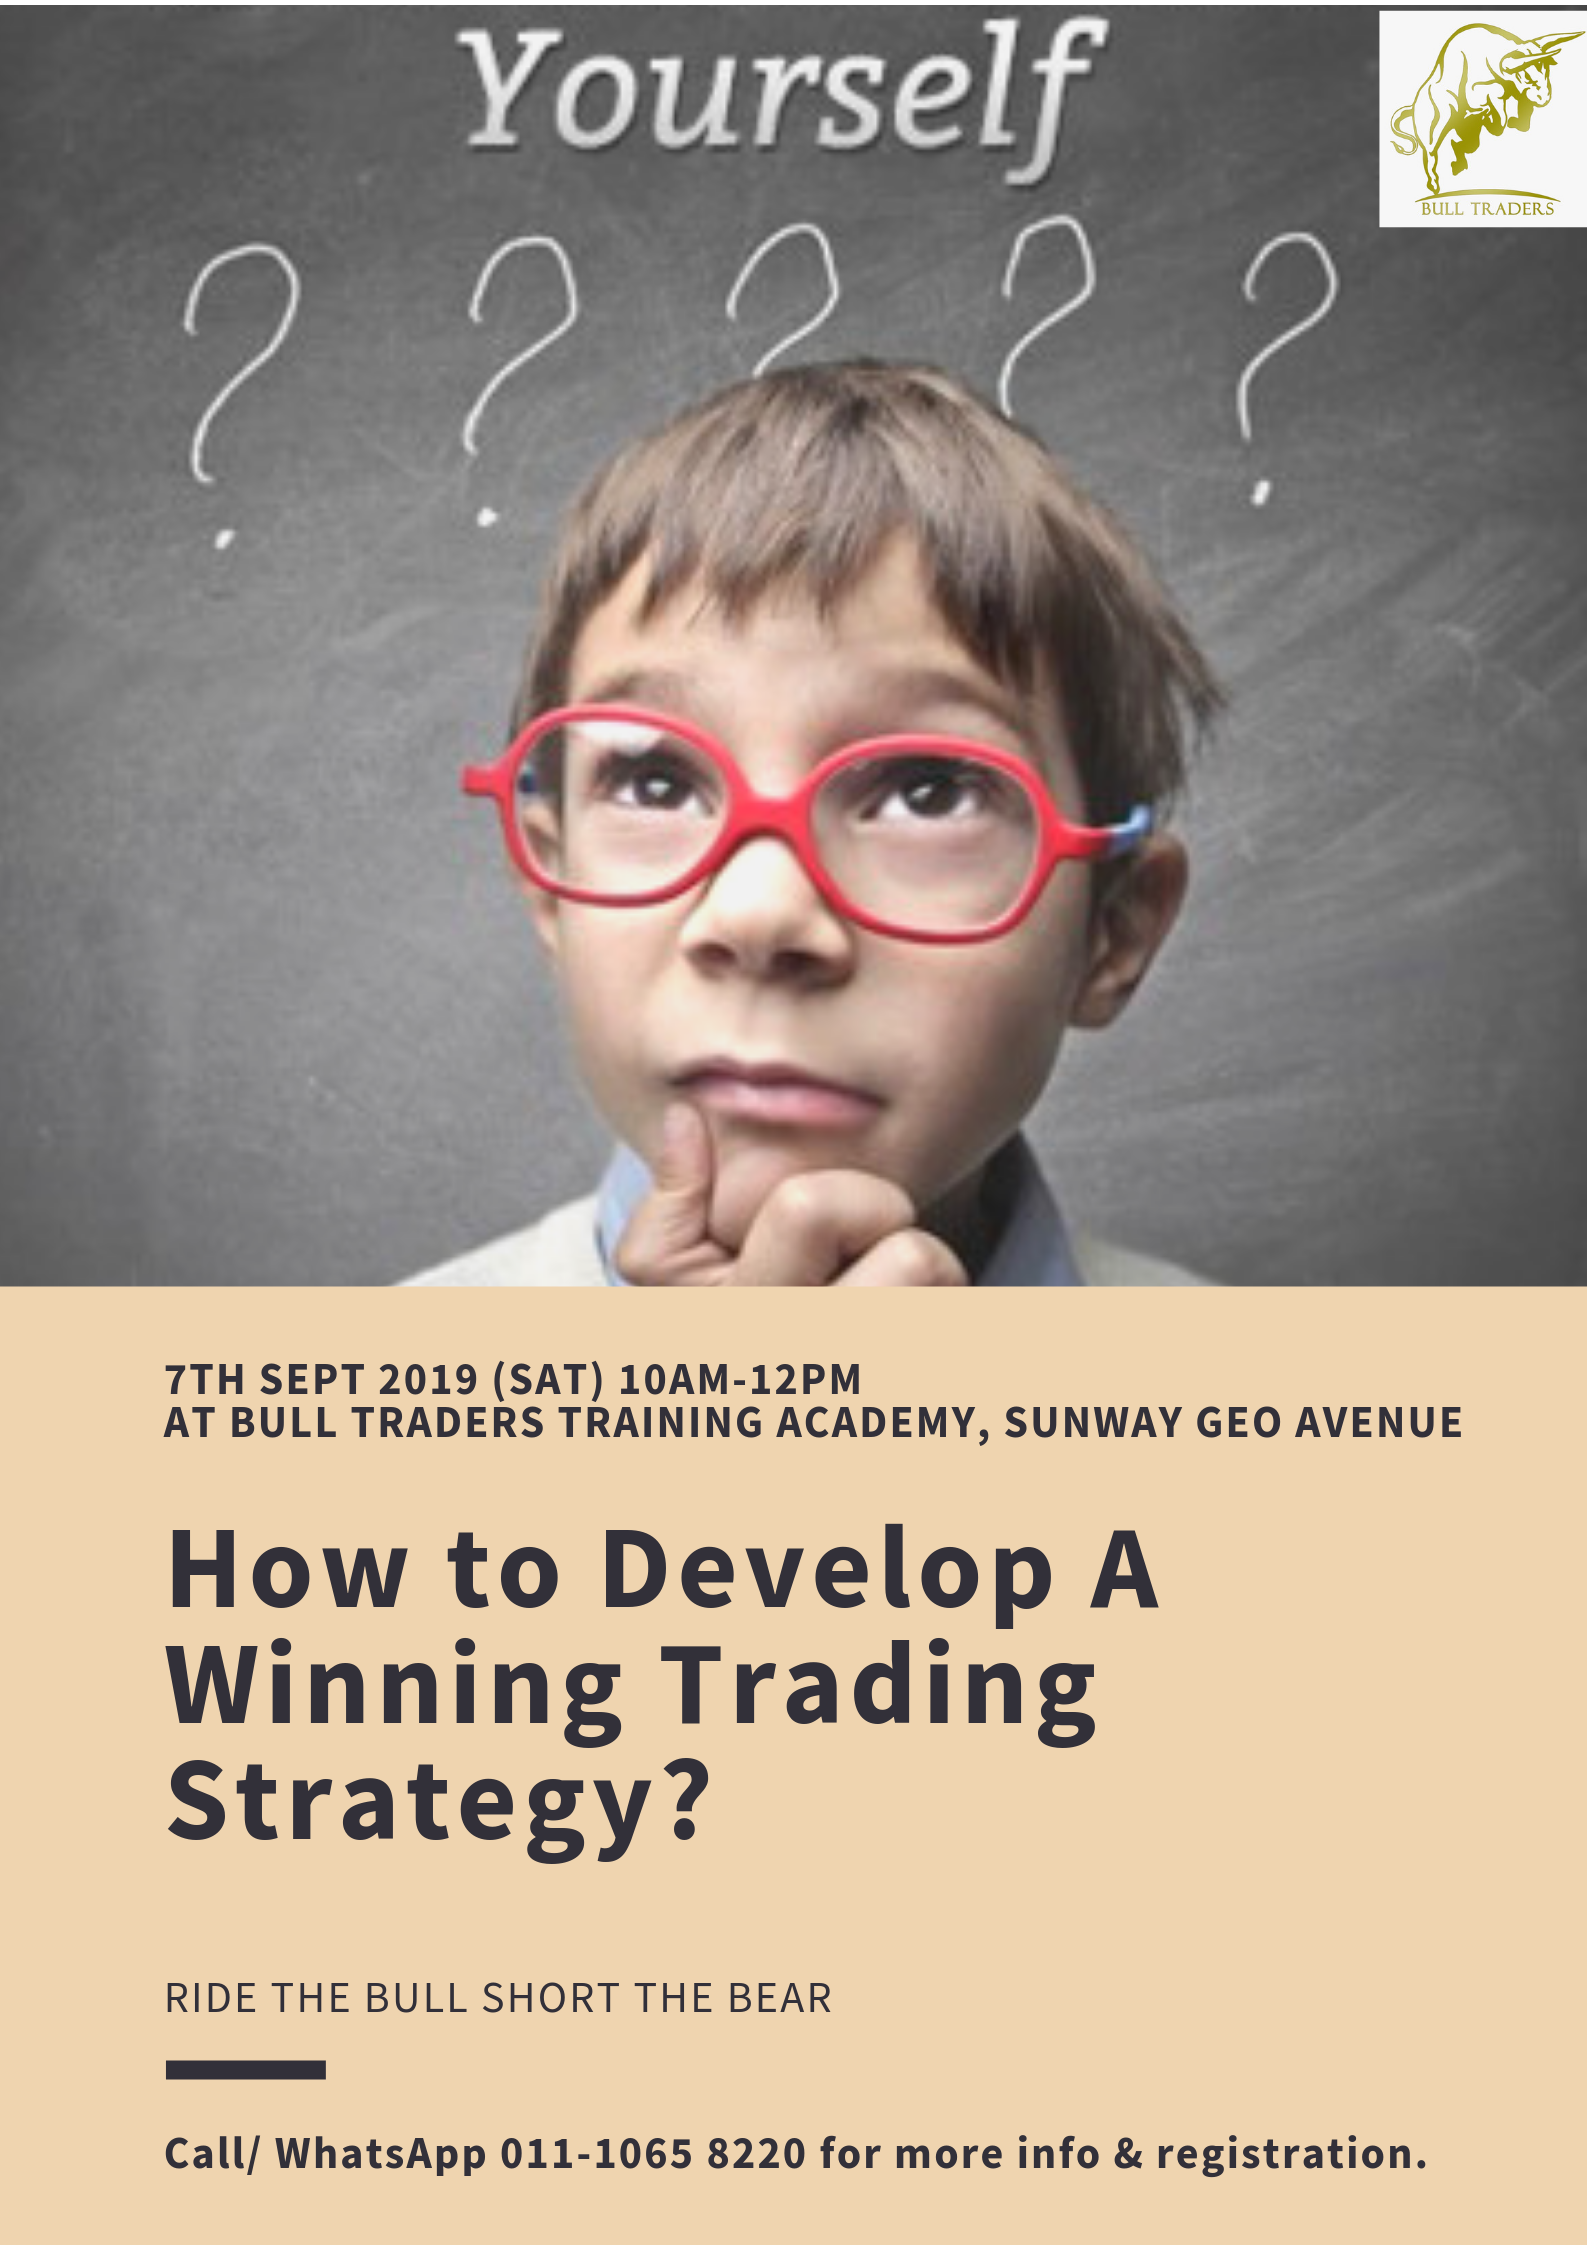 How to Develop A Winning Trading Strategy?